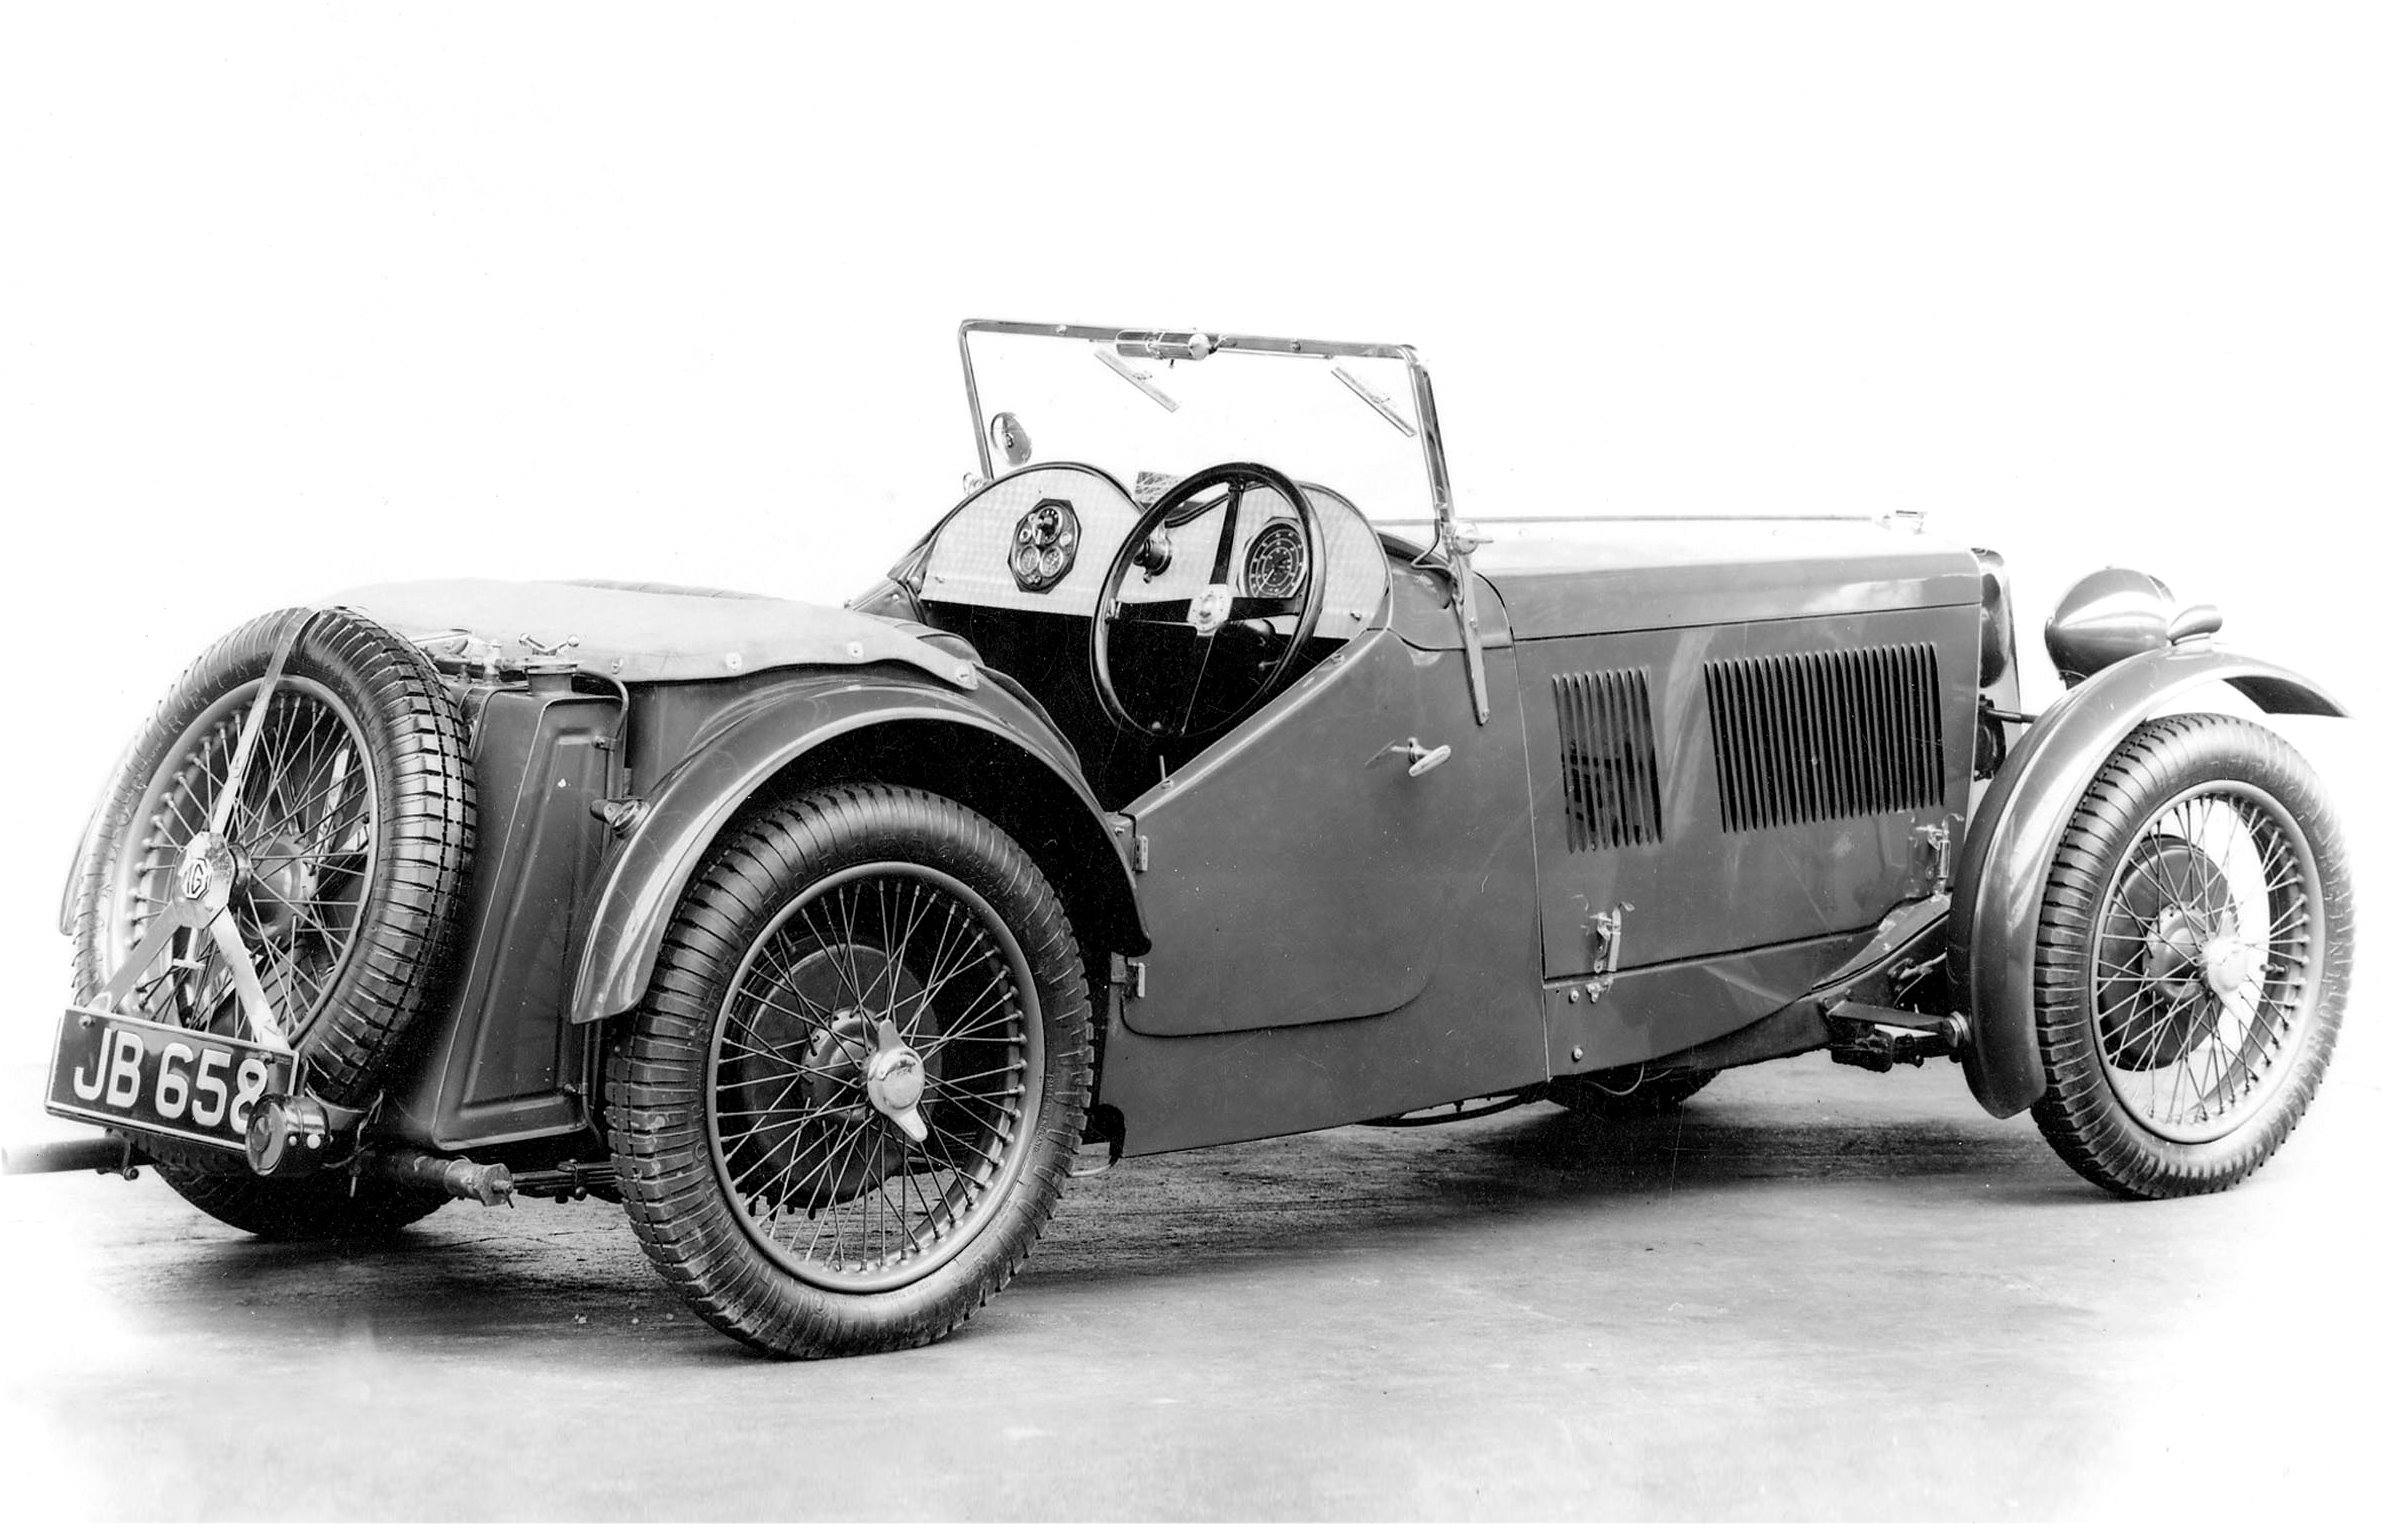 Slab tank, cycle-type wings, cutaway doors, they looked the epitome of the 1930s sports car